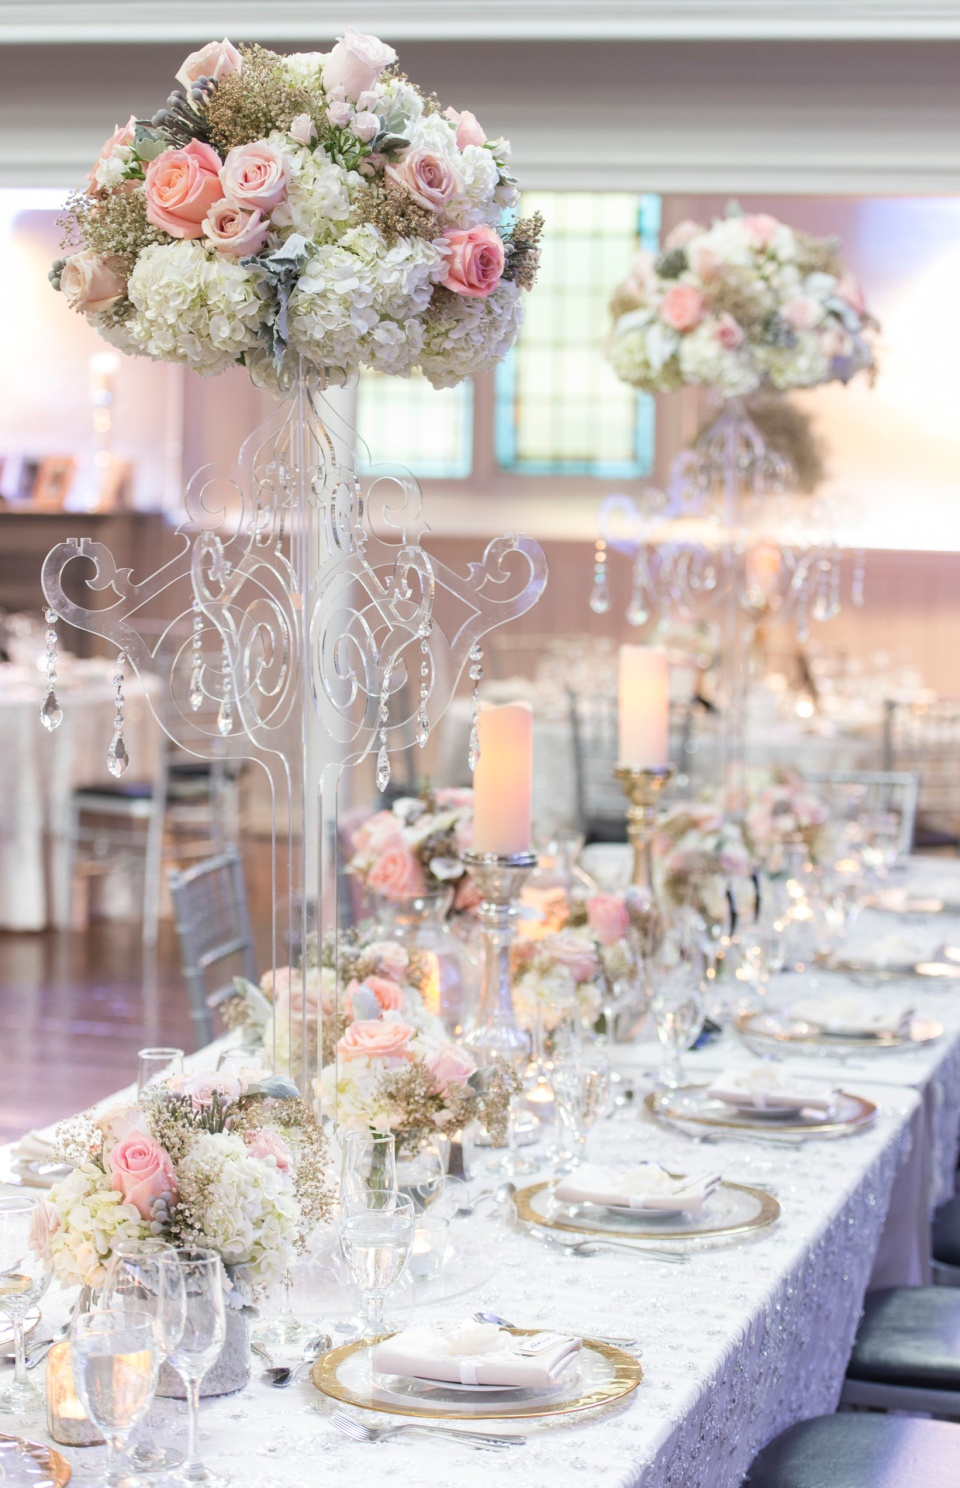 Head Table Candelabra's with Vintage Flowers - Berkeley Church